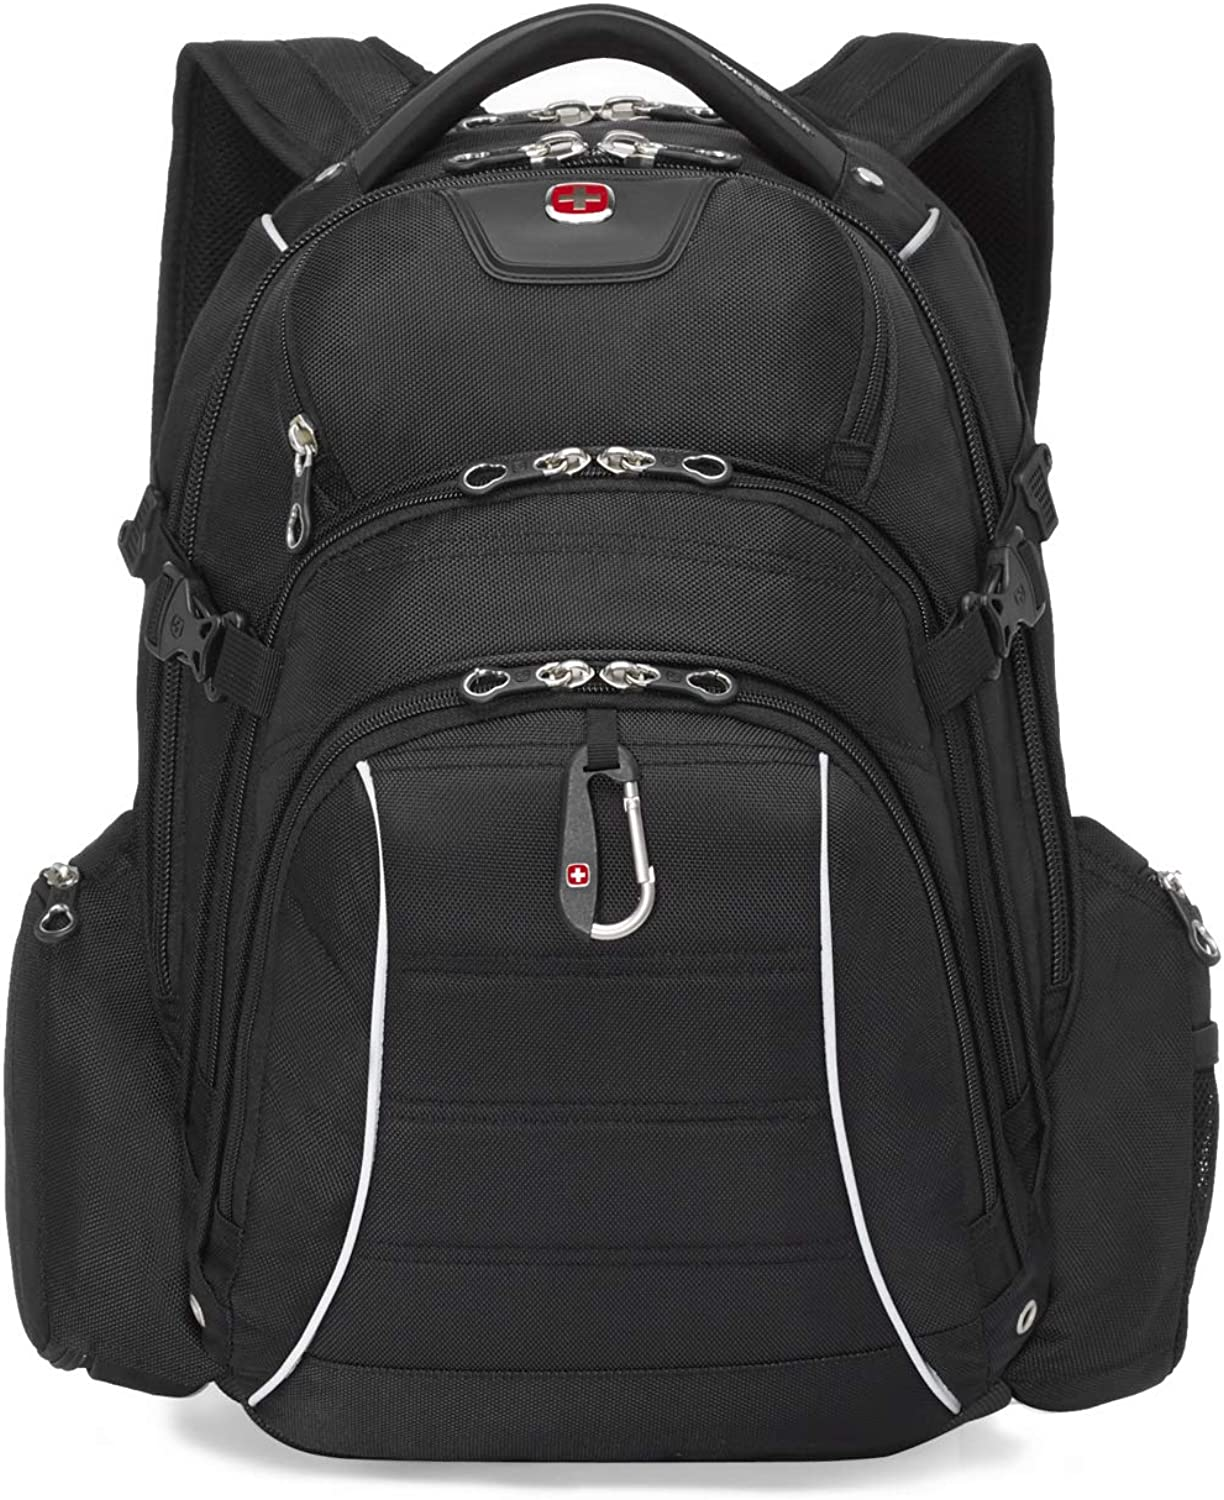 Swiss Gear Backpack up to 17.3 inch laptop multi pockets SWA9855C